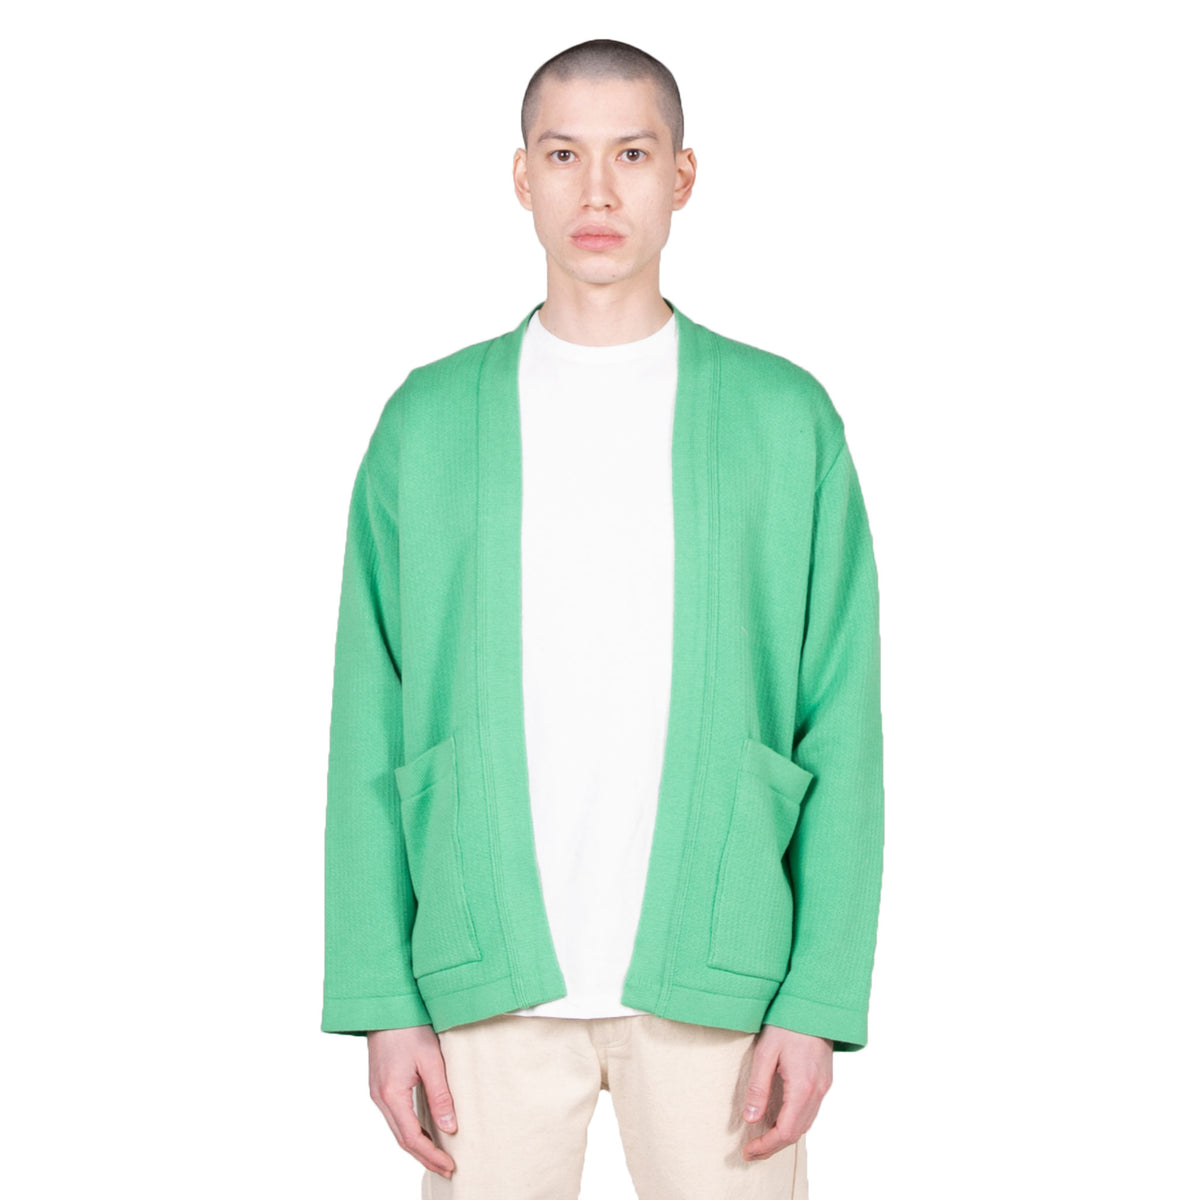 The English Difference Kimono - Pea Green